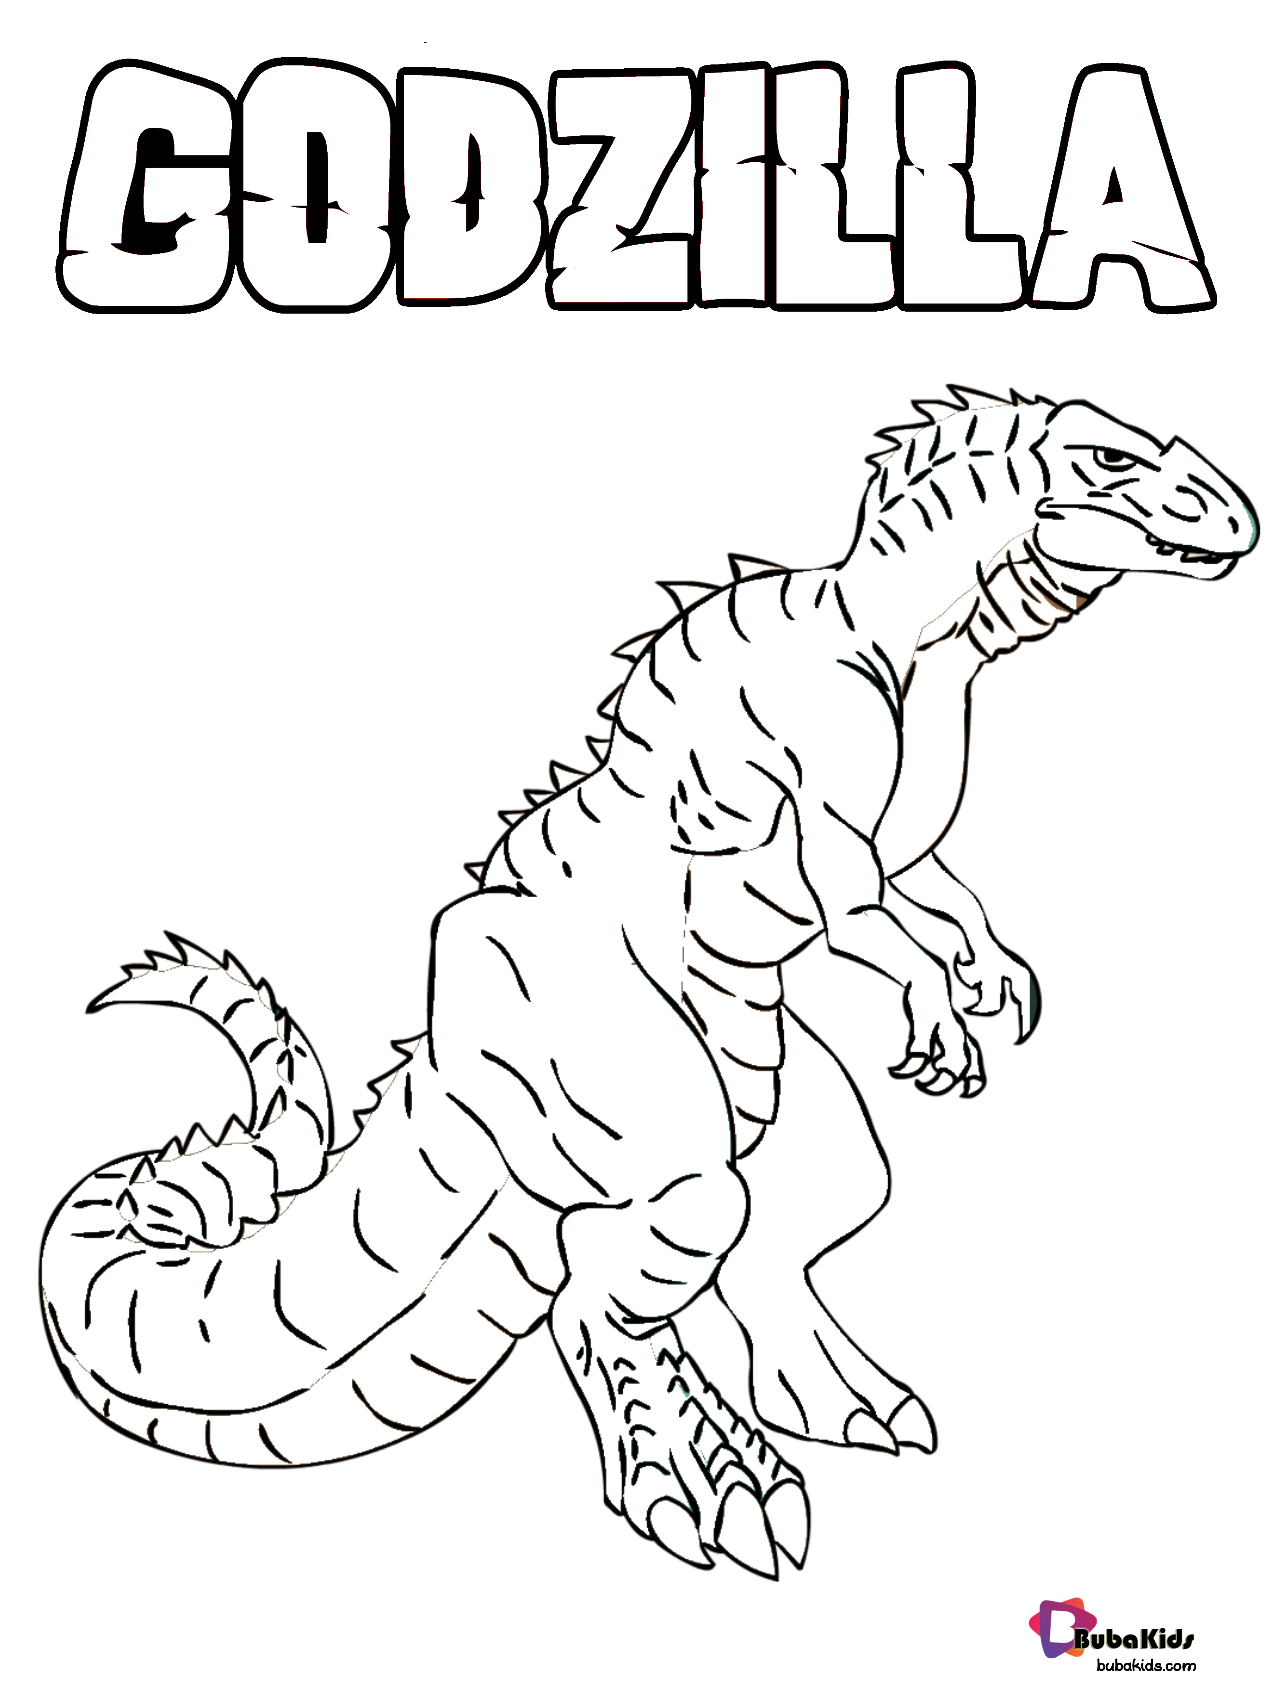 Godzilla King Of The Monsters Coloring Page Godzilla Monster Godzilla Monster Cartoon Colo Coloring Pages Monster Coloring Pages Cartoon Coloring Pages